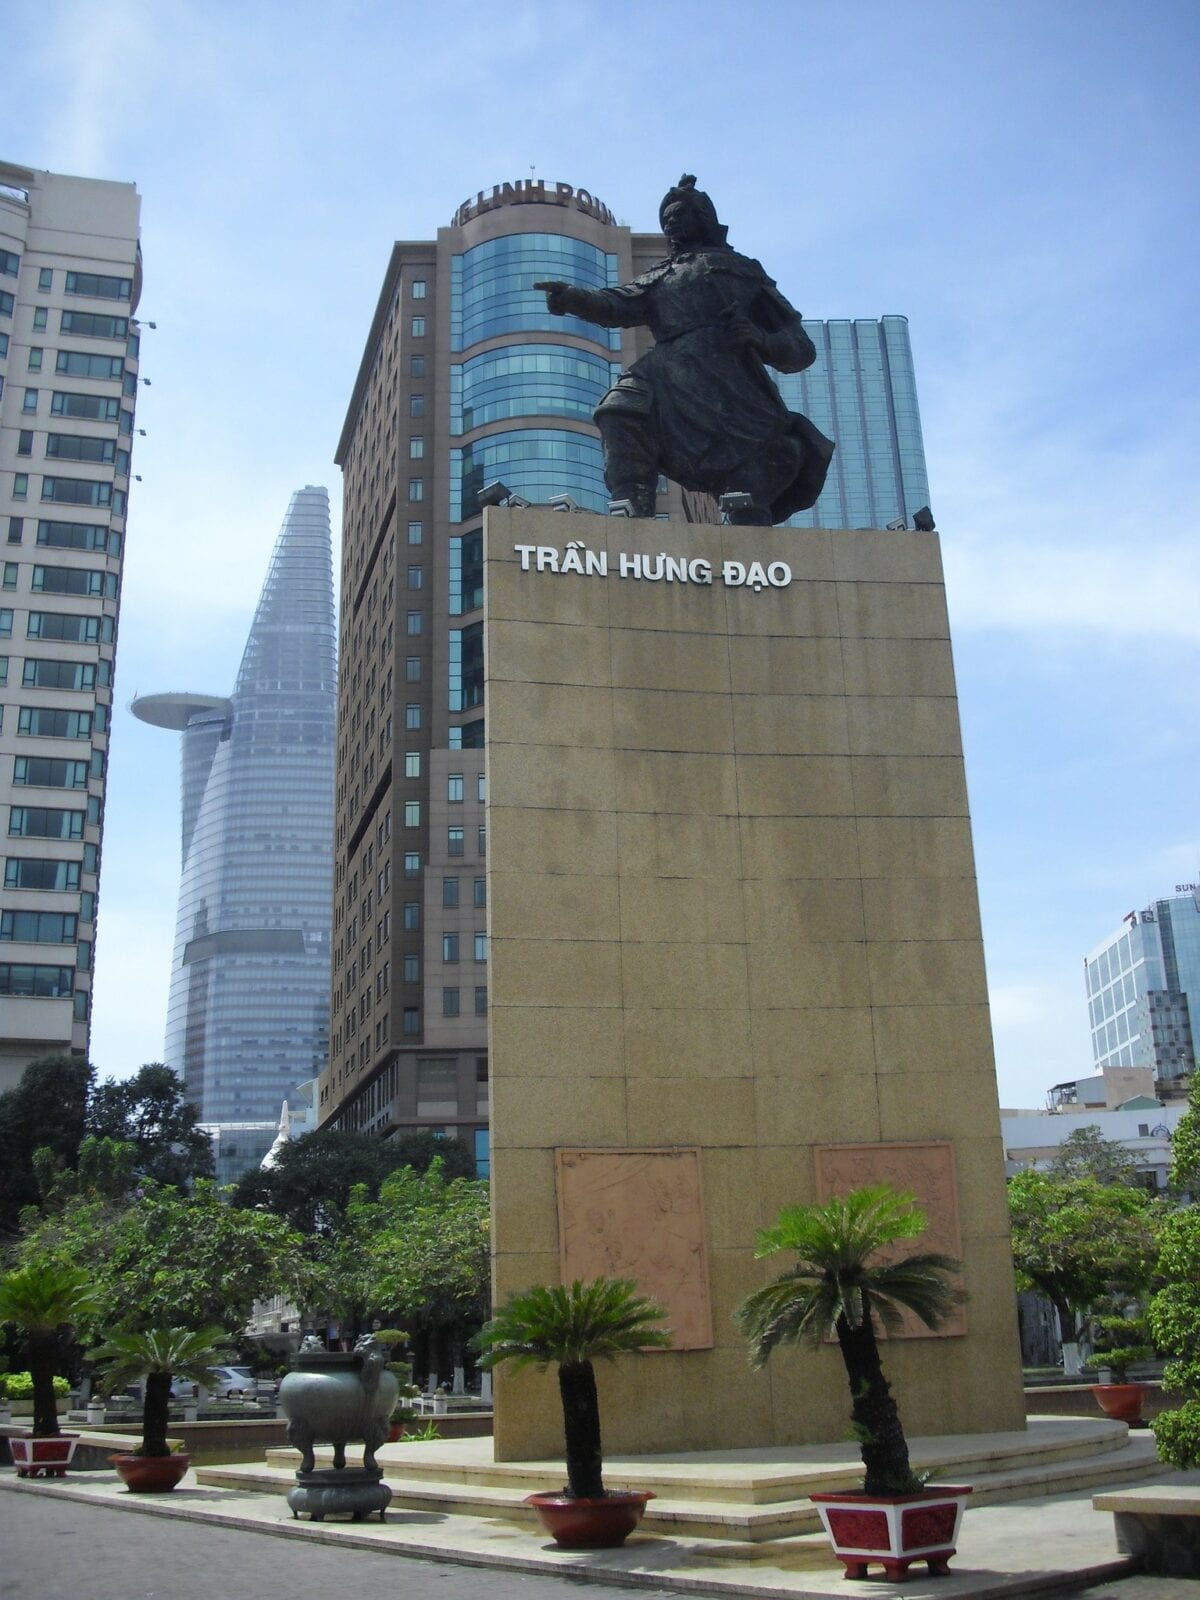 Image of the Tran Hung Dao statue at Me Linh Square in HCMC, Vietnam